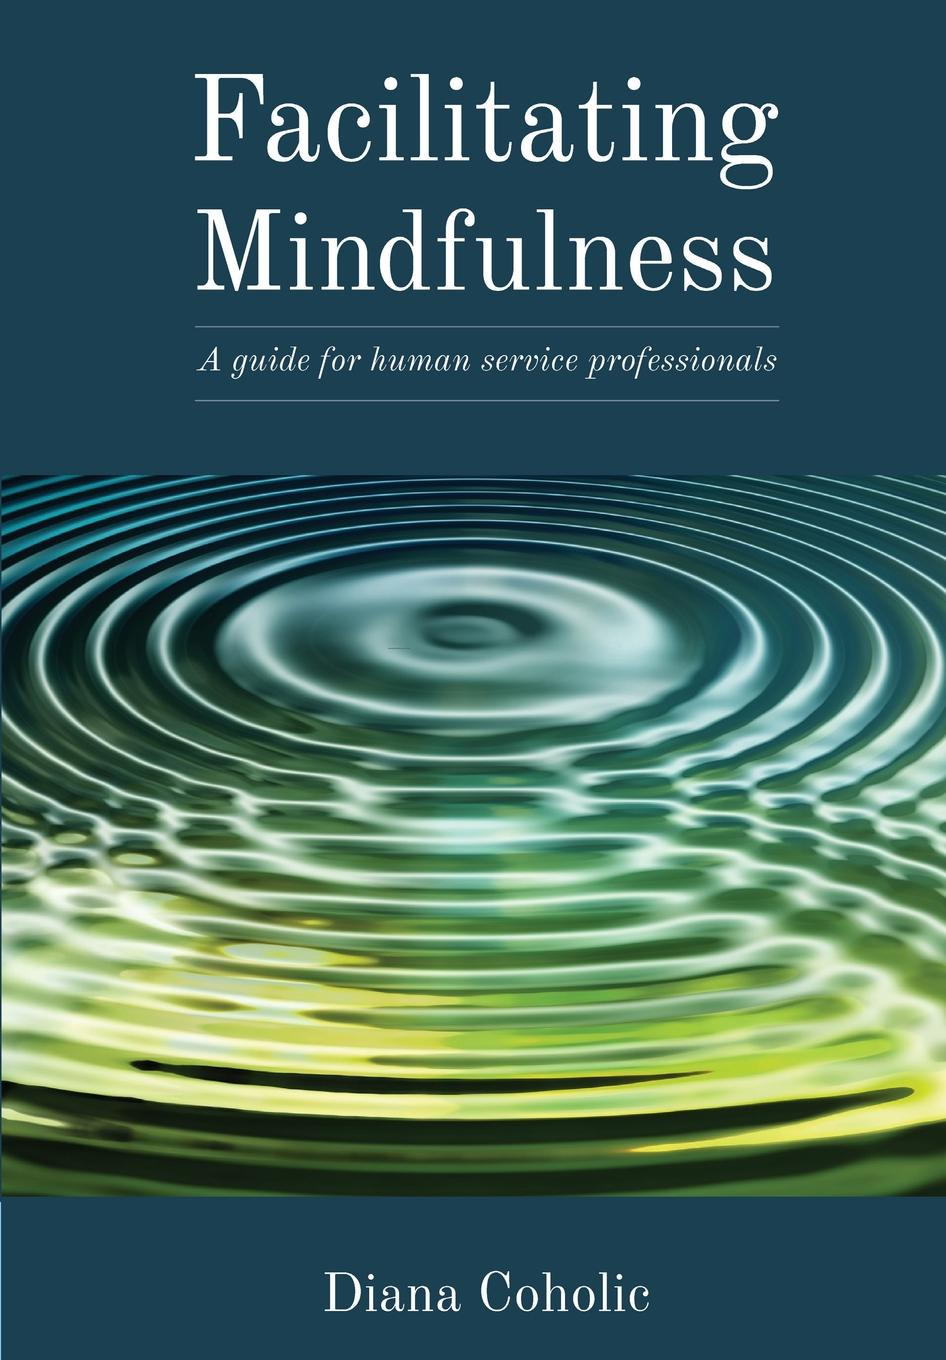 Diana Coholic. Facilitating Mindfulness. A Guide for Human Services Professionals